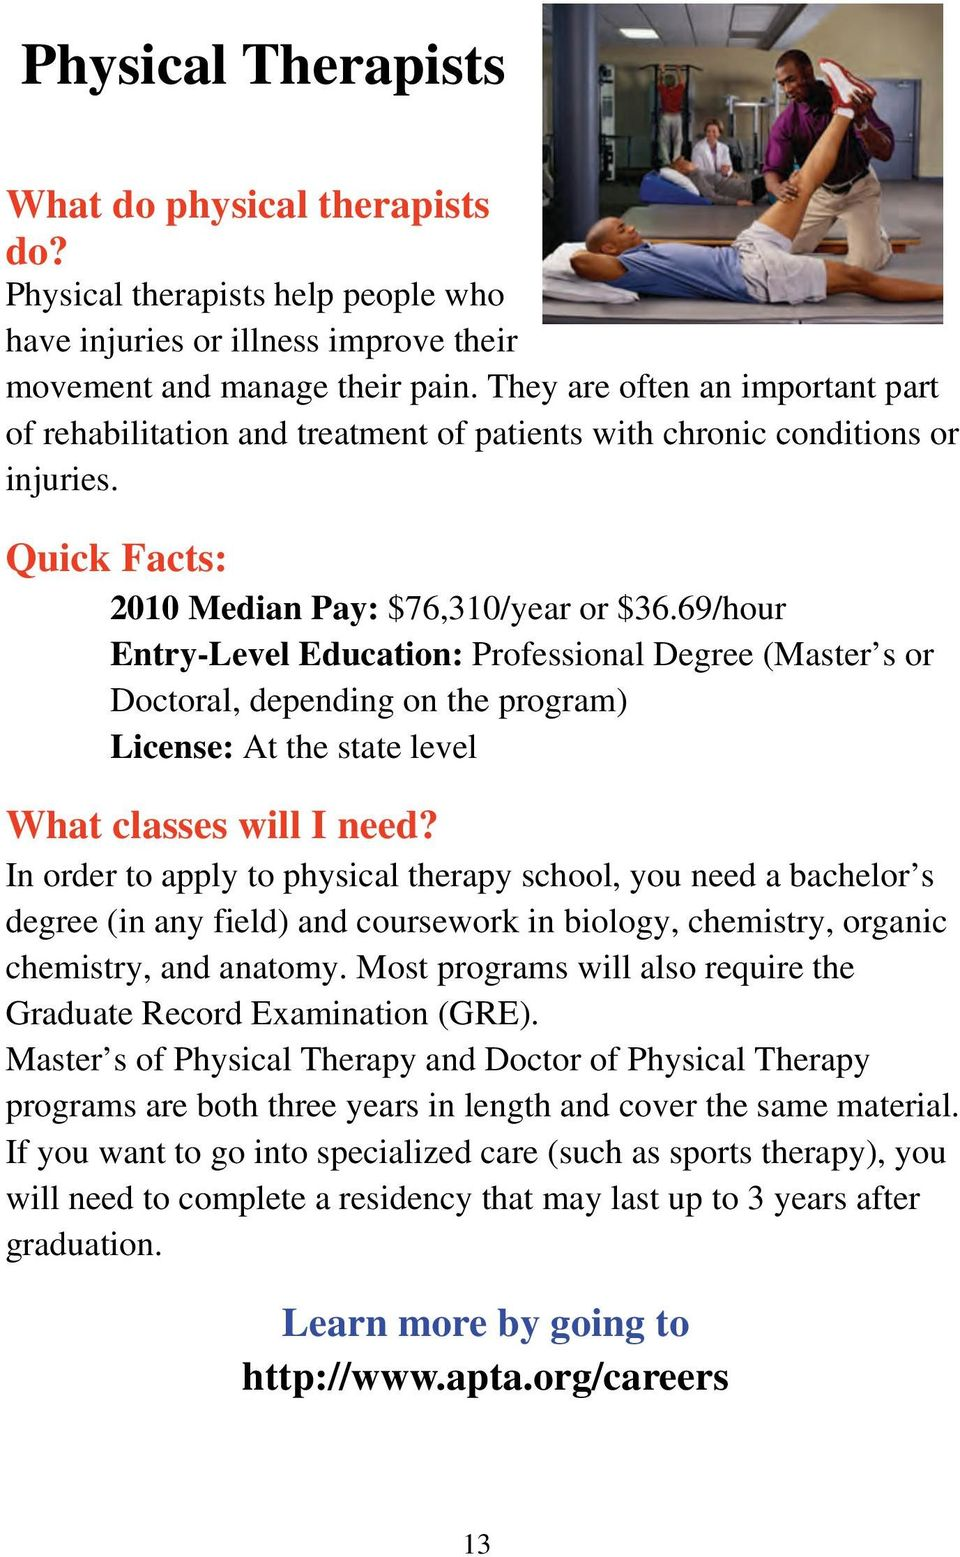 69/hour Entry-Level Education: Professional Degree (Master s or Doctoral, depending on the program) License: At the state level In order to apply to physical therapy school, you need a bachelor s